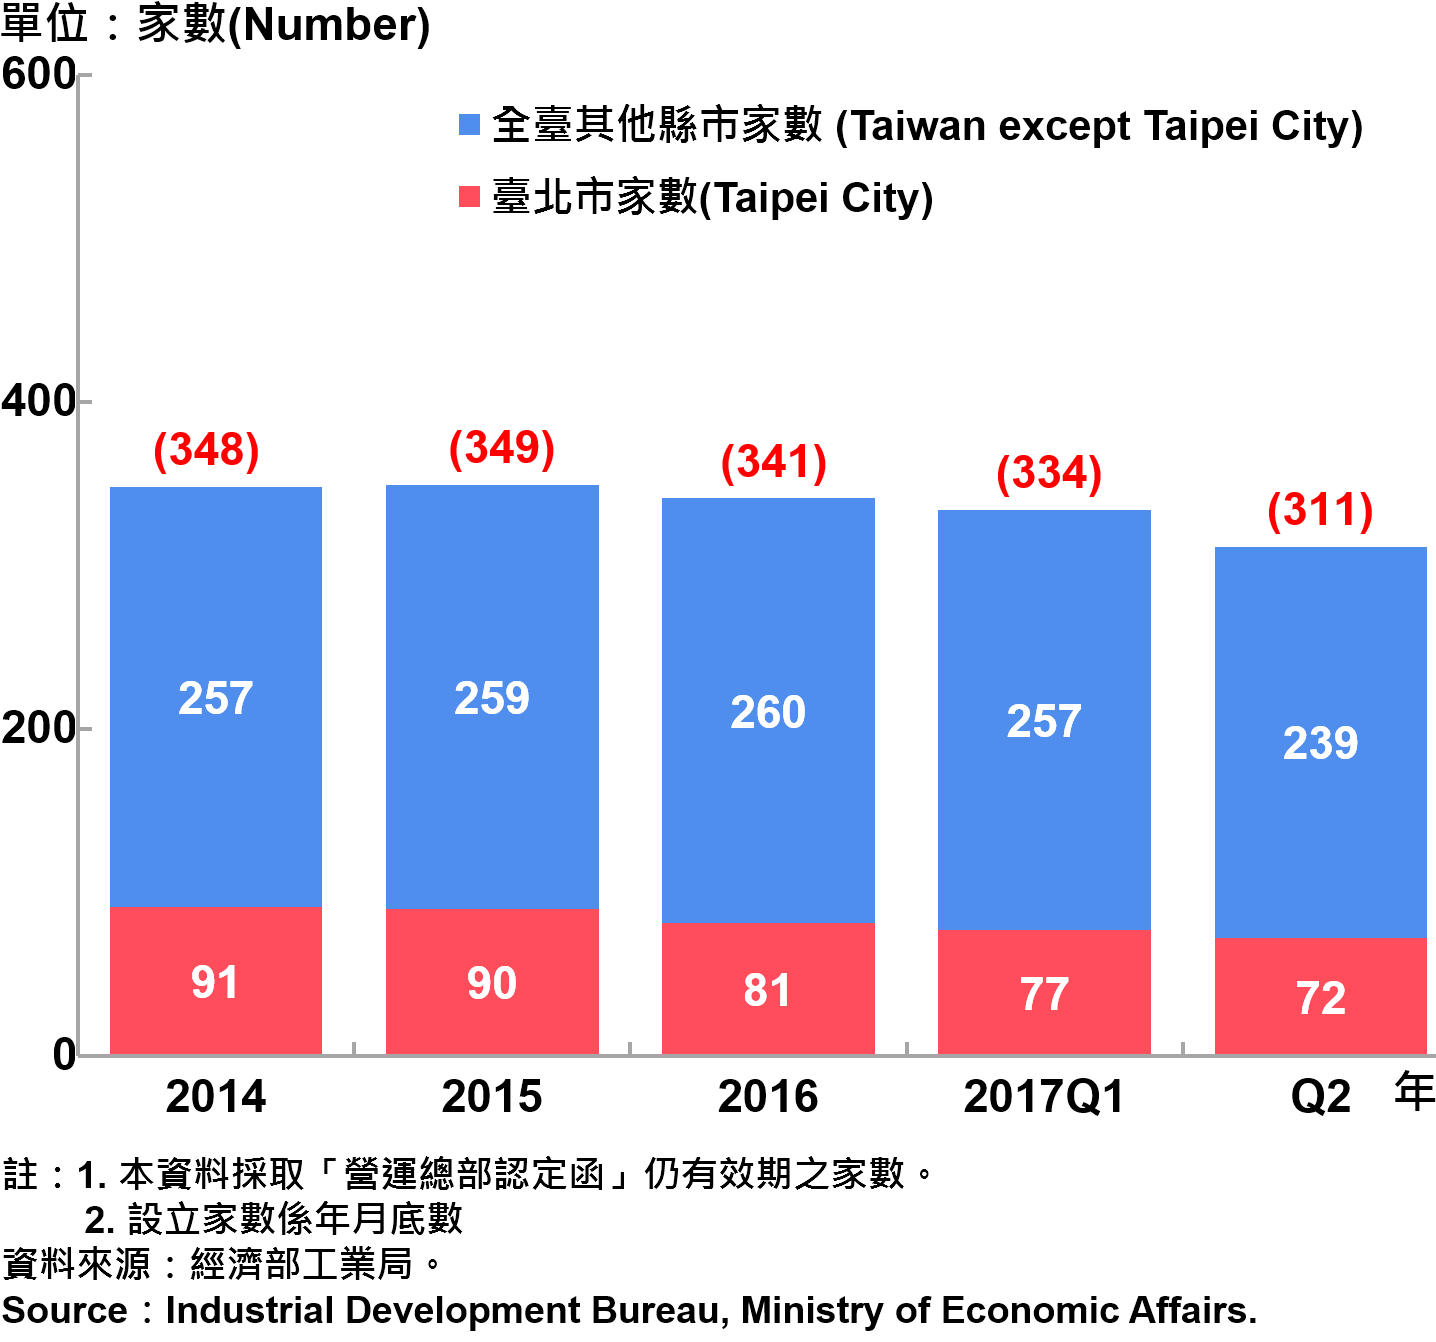 圖15、臺北市企業營運總部之設立家數趨勢圖—2017Q2 Number of Established Enterprise Business Headquarters in Taipei City—2017Q2